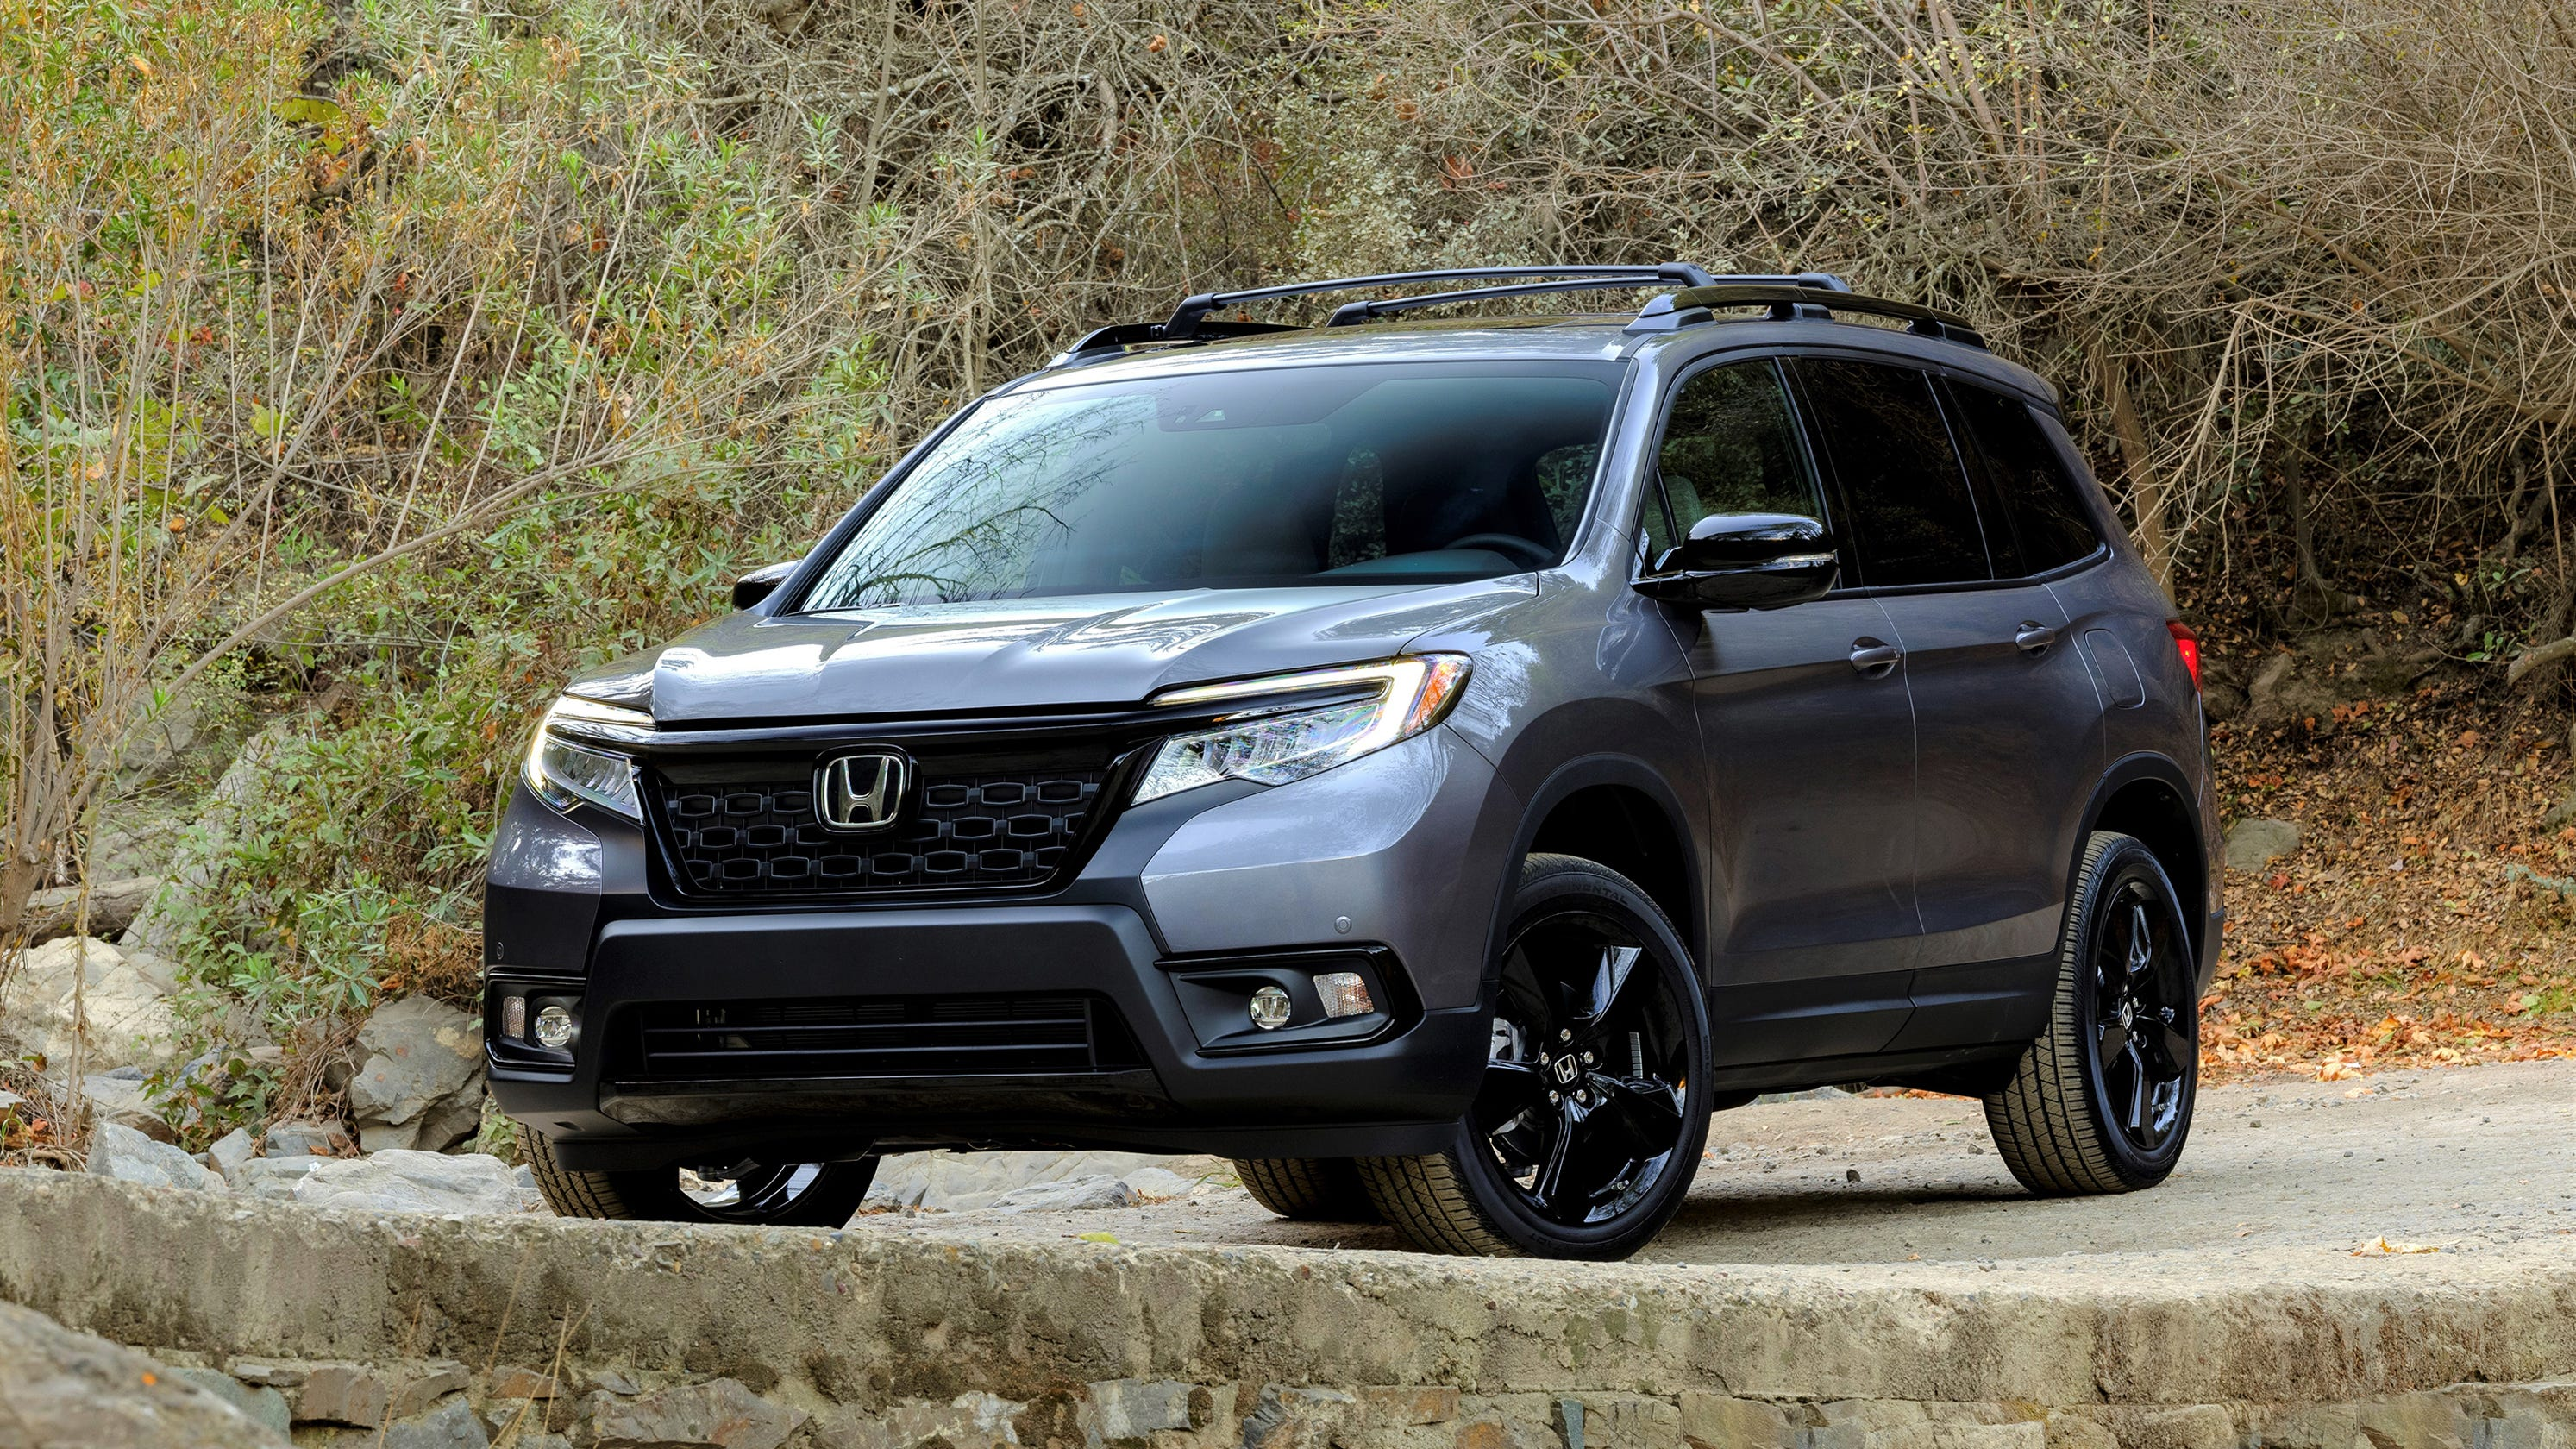 Honda Pport Key Features Of The All New 5 Penger Suv Debuting At La Auto Show